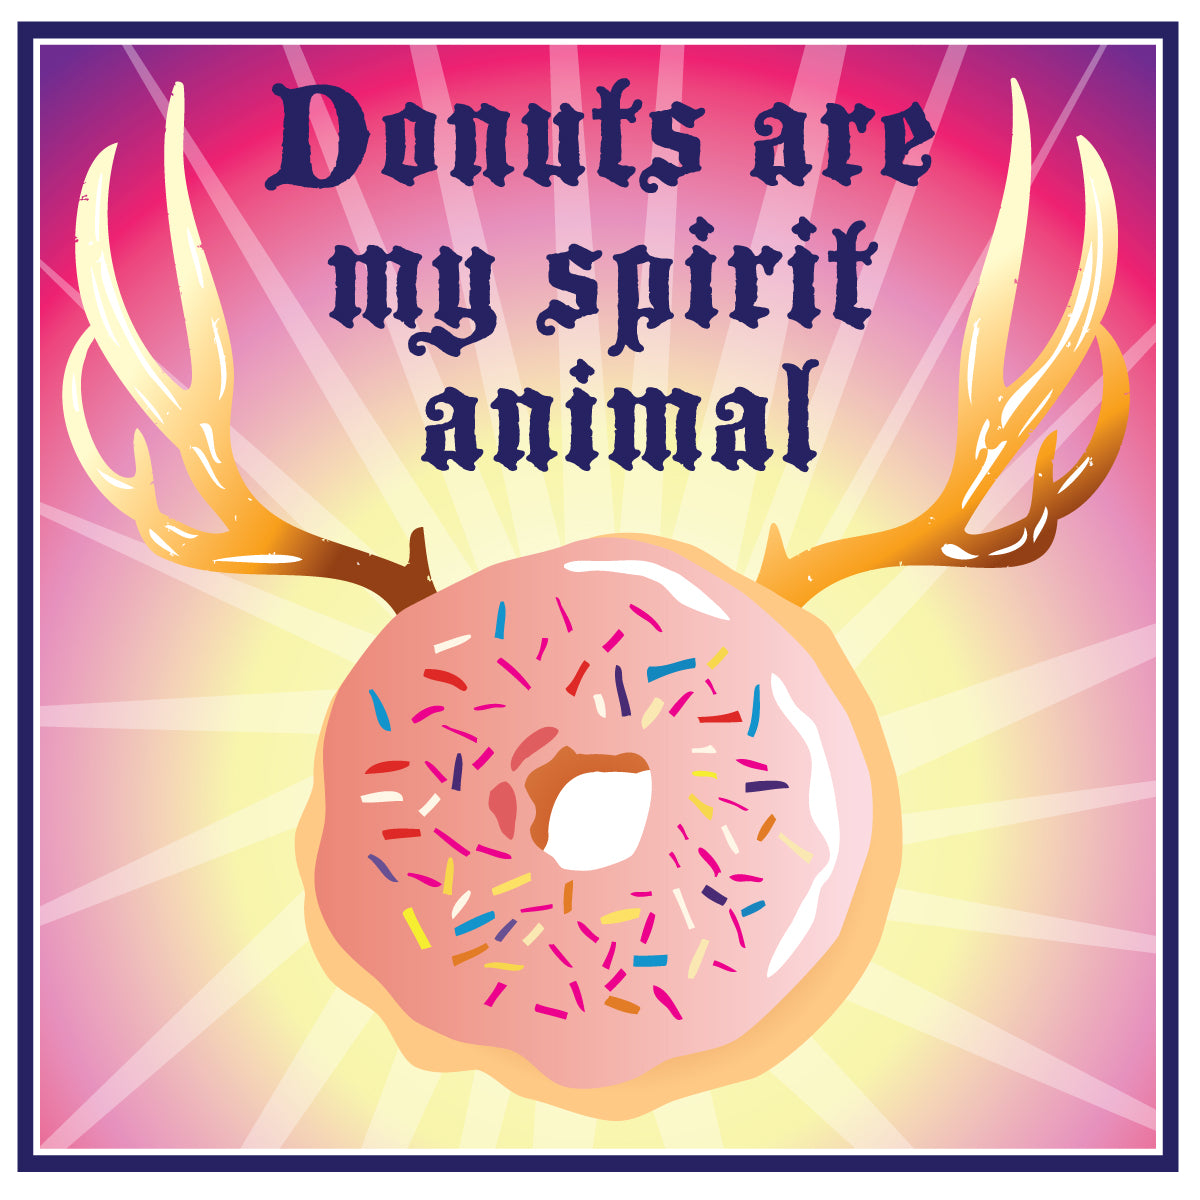 Donuts are my spirit animal - Sticker